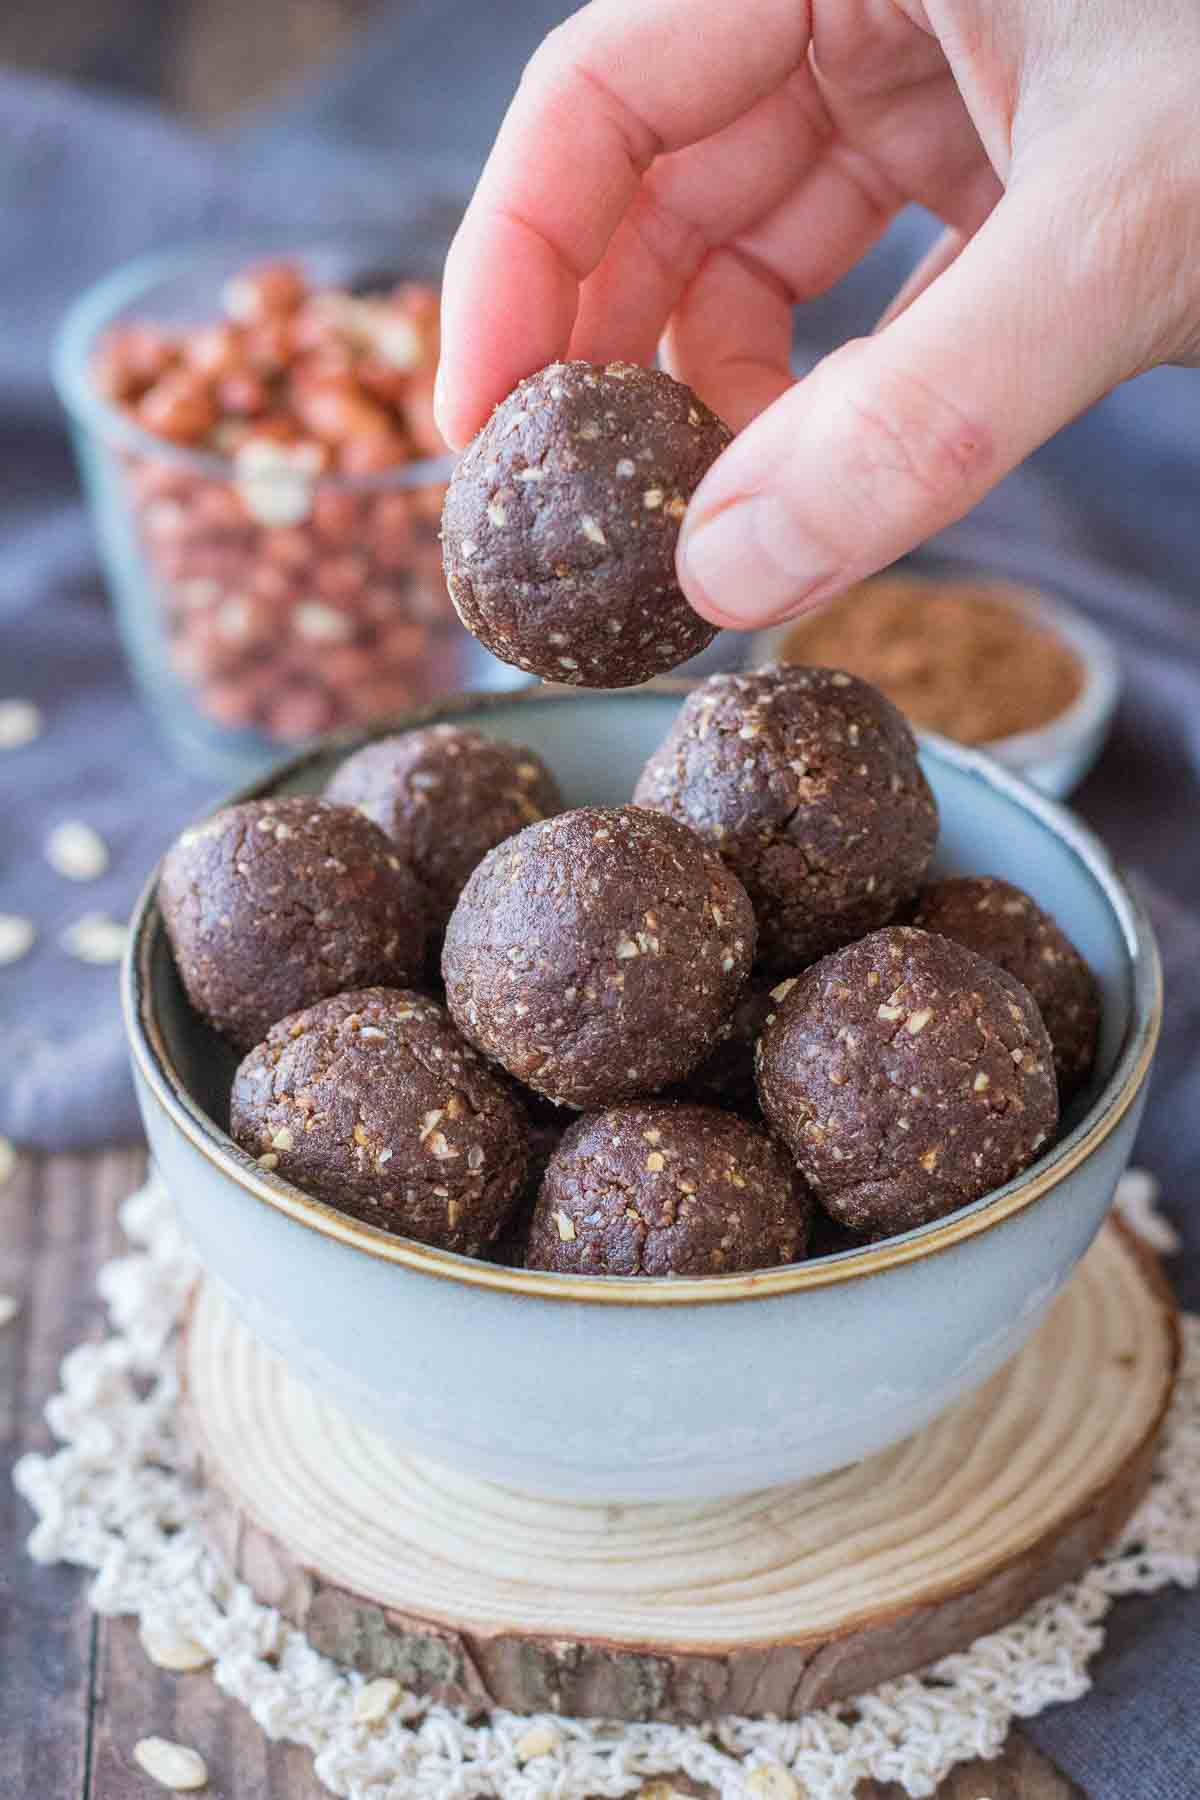 Hand taking Chocolate Peanut Butter Balls from a bowl